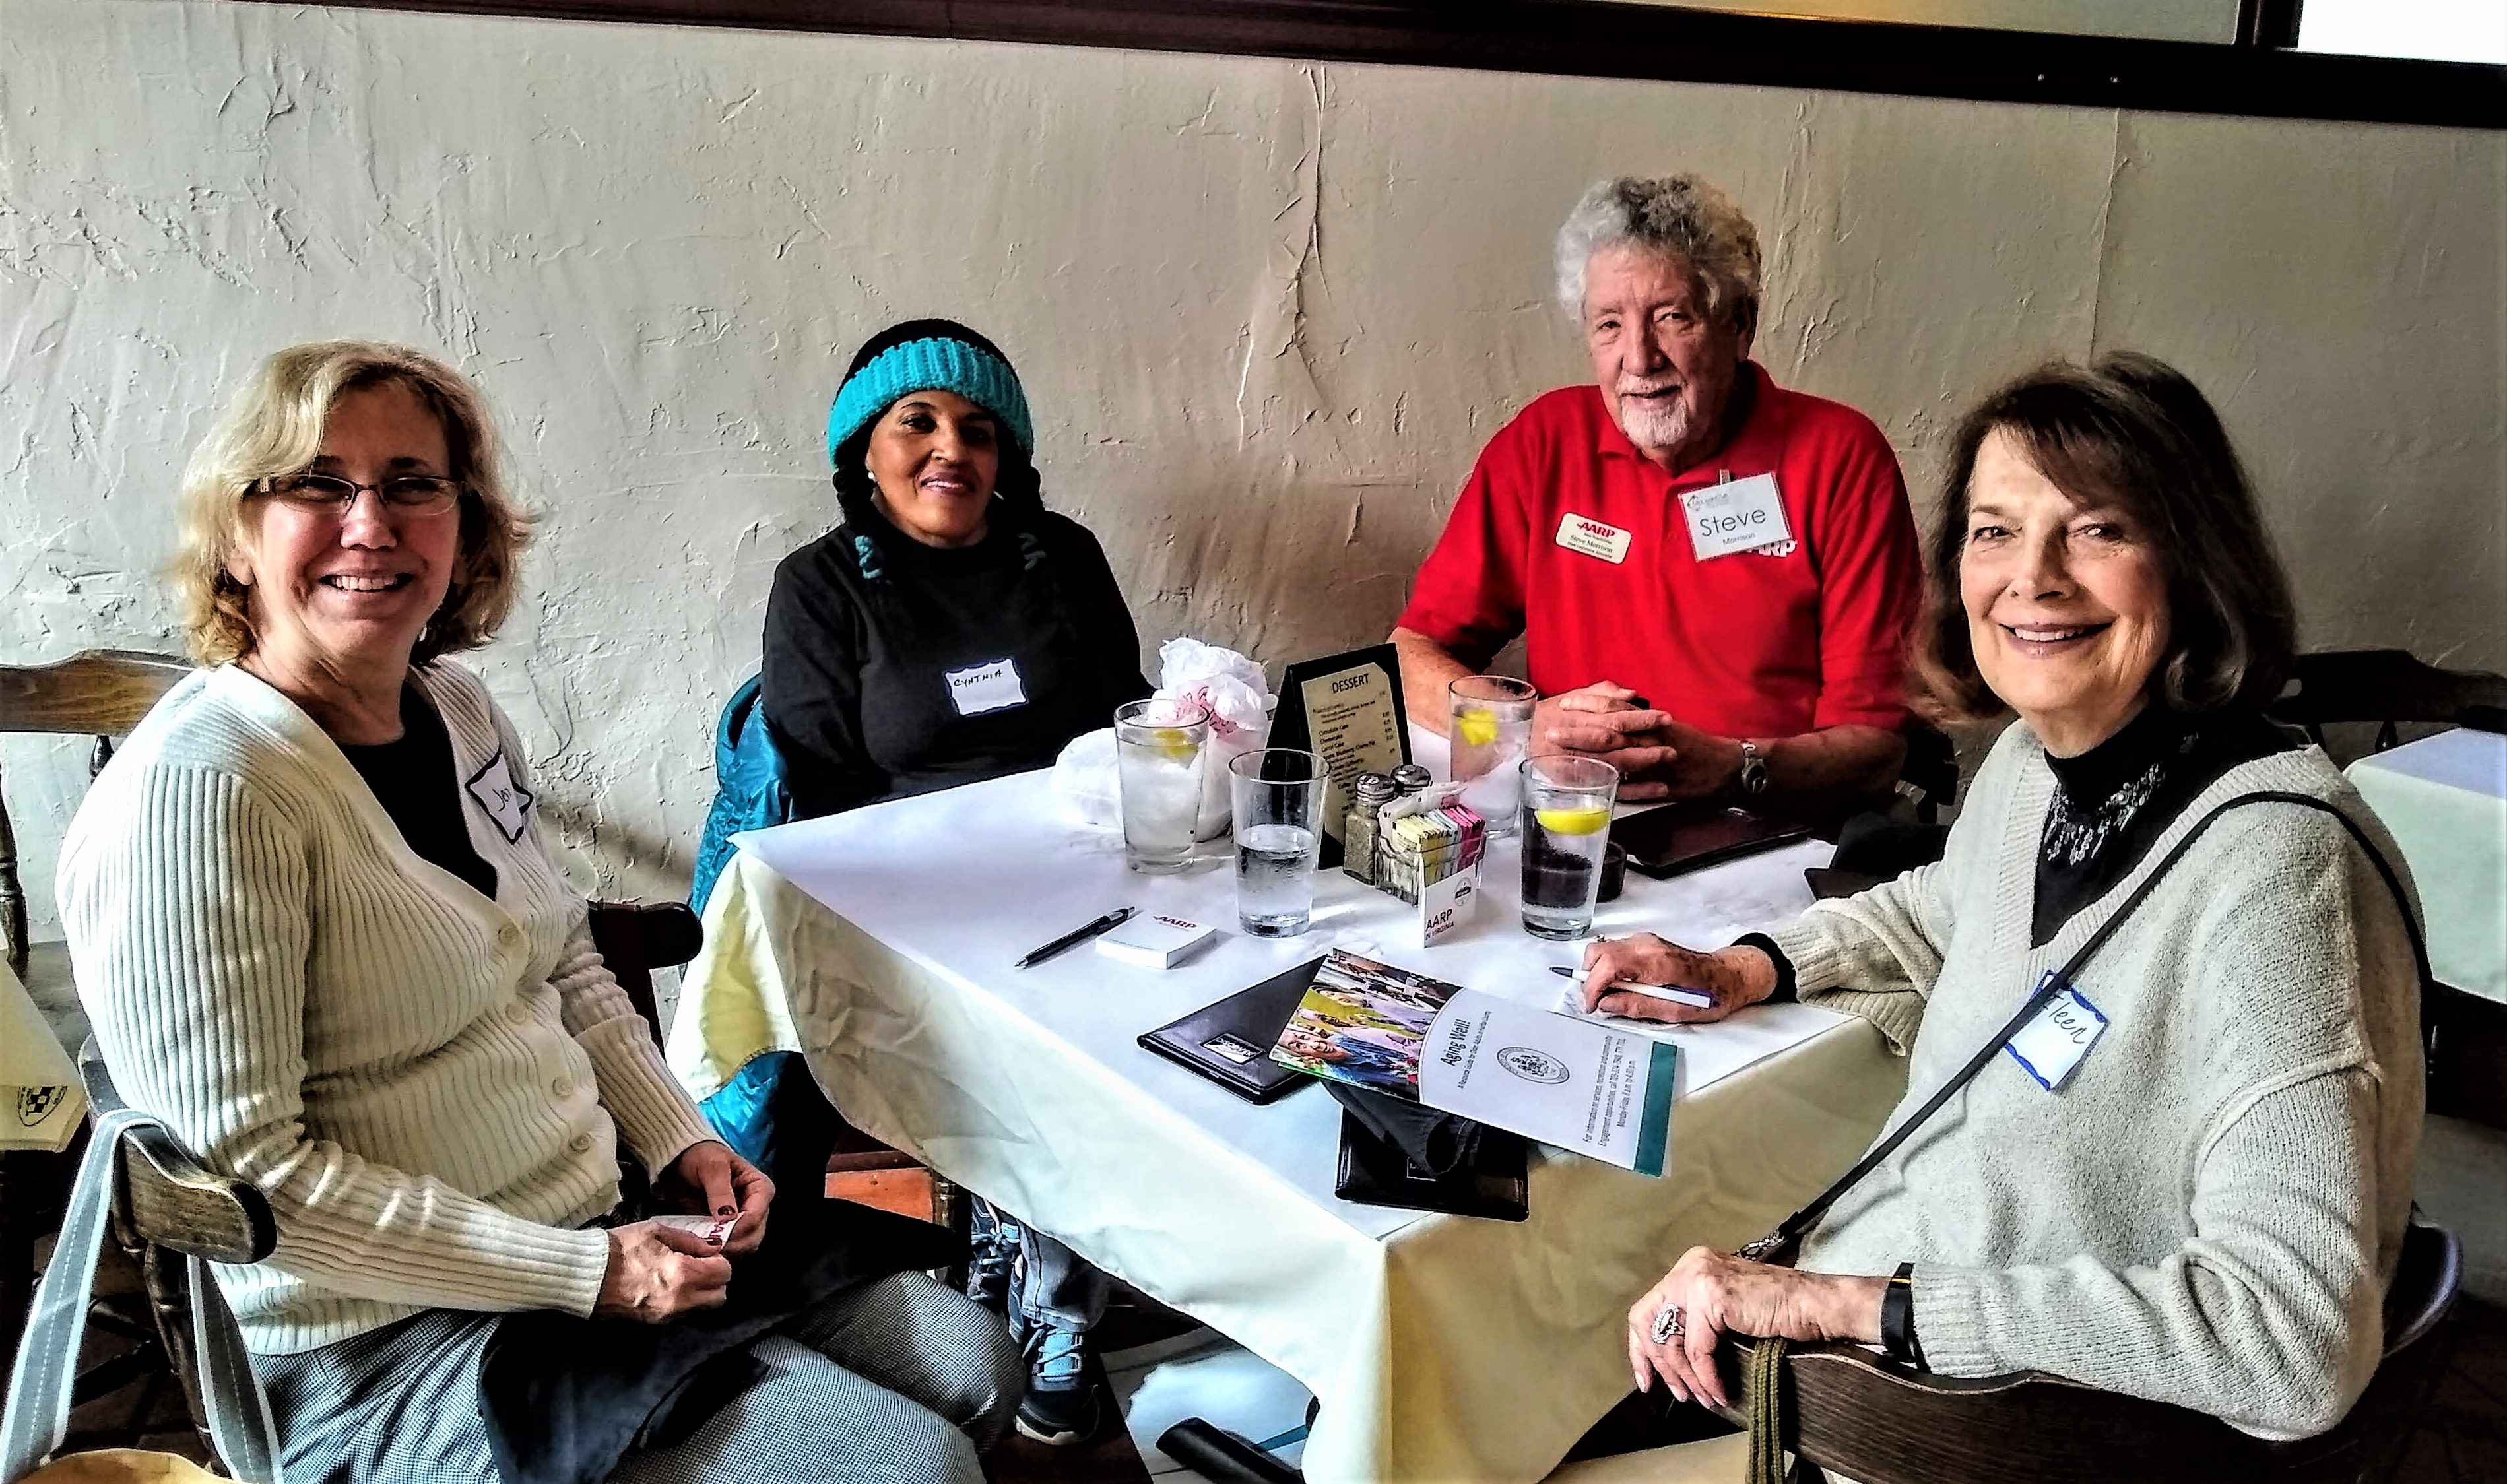 Lunch Group Offers a Chance to Socialize